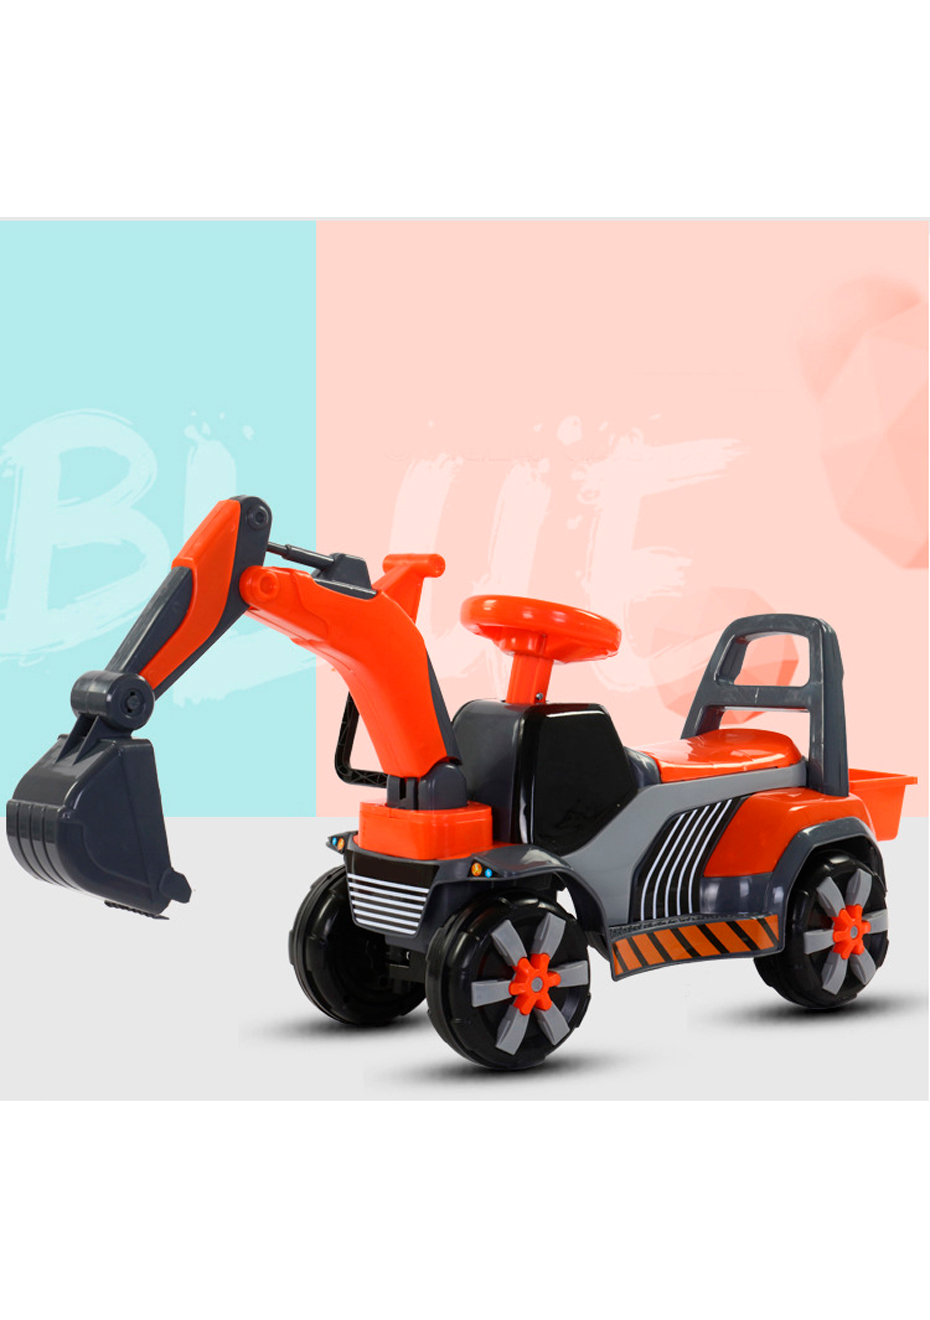 Digger Toy Kid S Ride On Digger Toy Orange